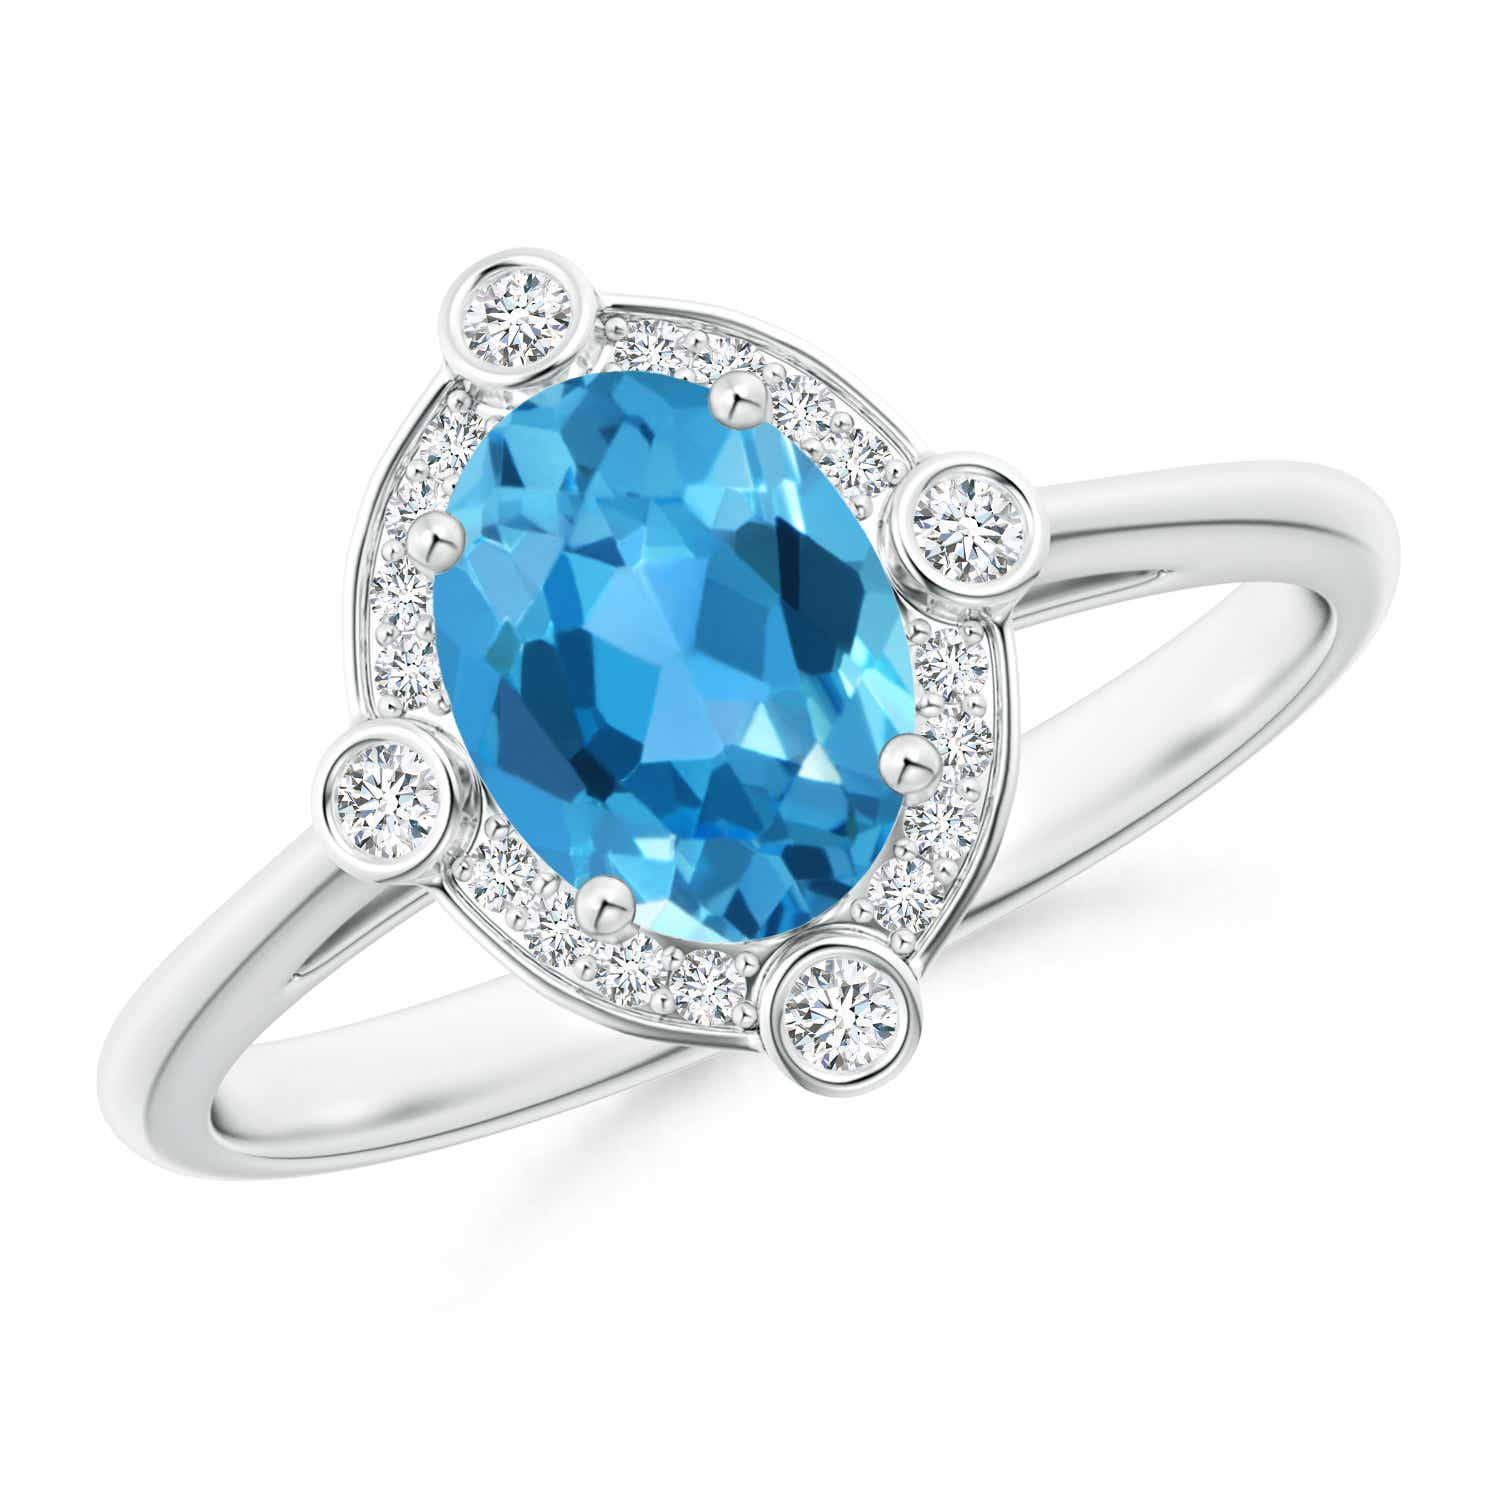 Angara Round Swiss Blue Topaz Halo Ring with Diamond Accents phBmp